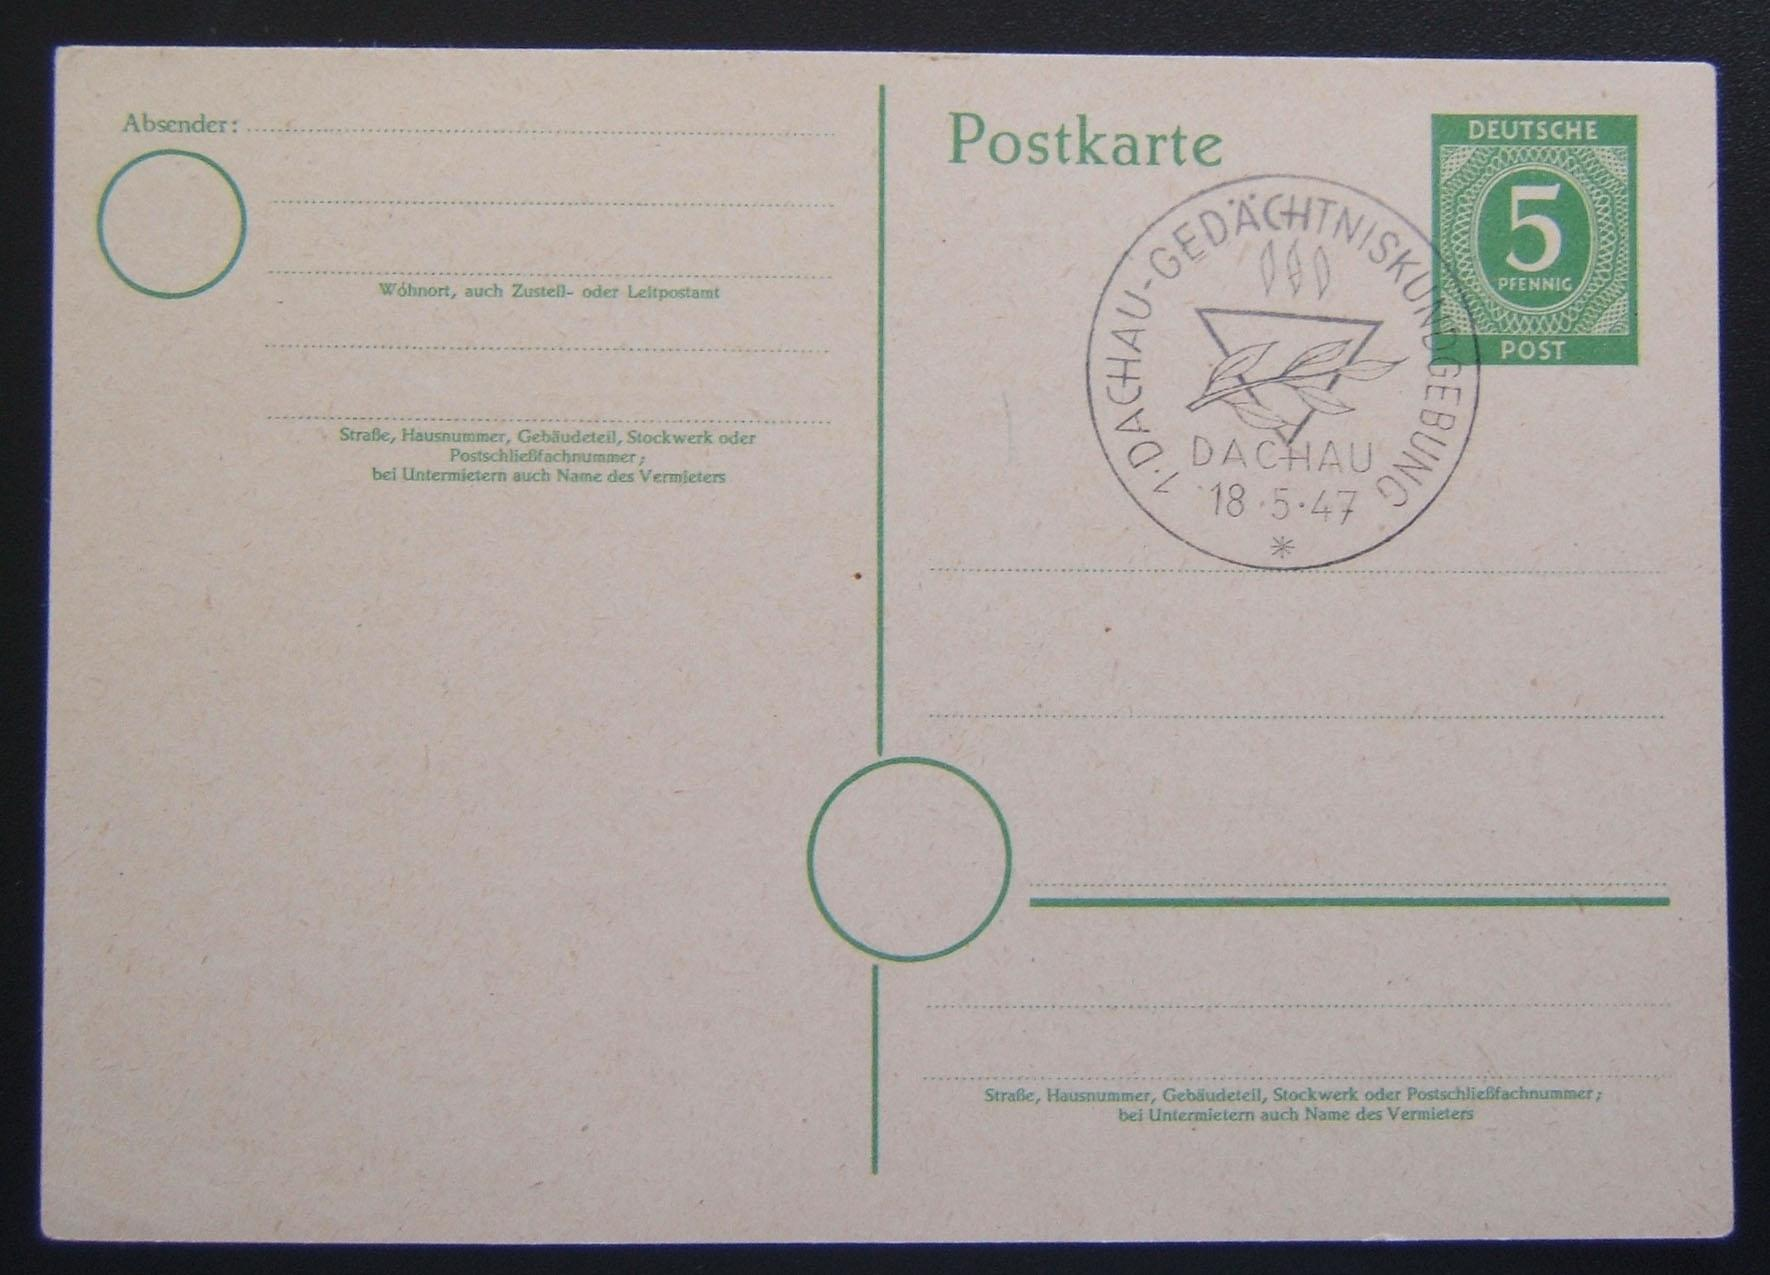 Post-Holocaust philately: Dachau camp 1947 Memorial Rally cacheted unused prepaid 5 Pfennig postcard. Obverse announces the dates of the commemoration and reverse is blank stationa